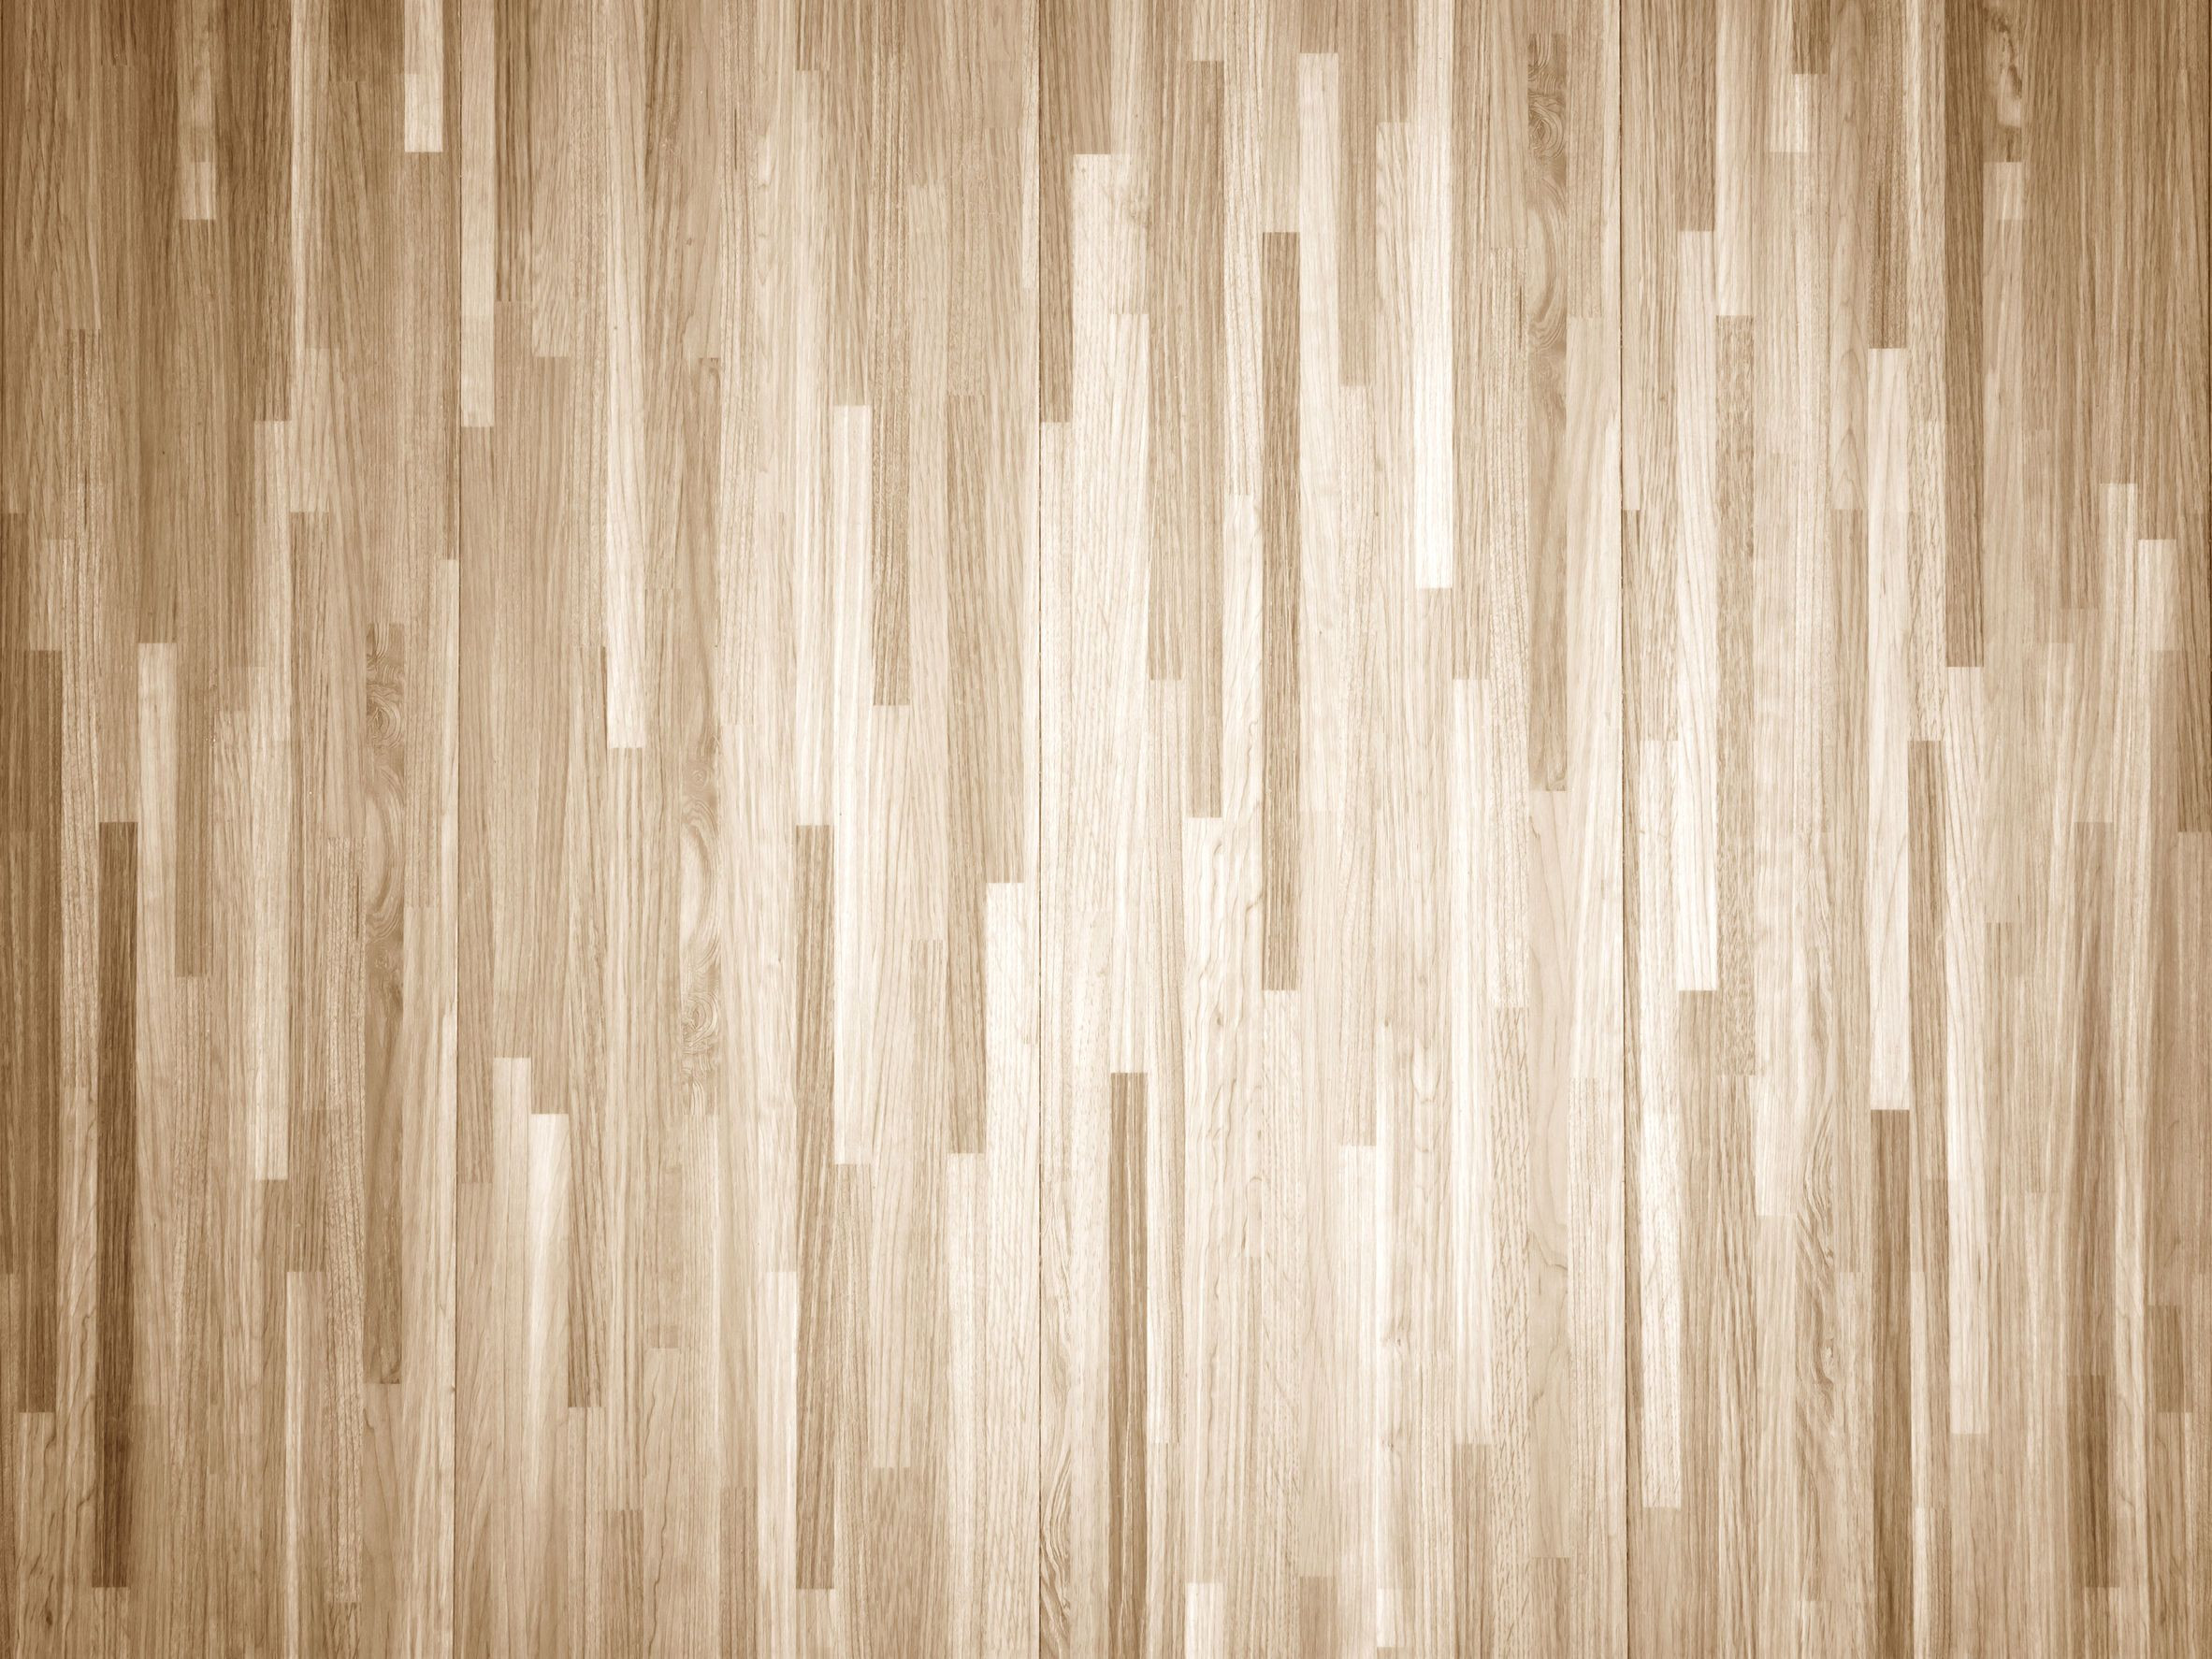 hardwood floor buffing pads of how to chemically strip wood floors woodfloordoctor com inside you